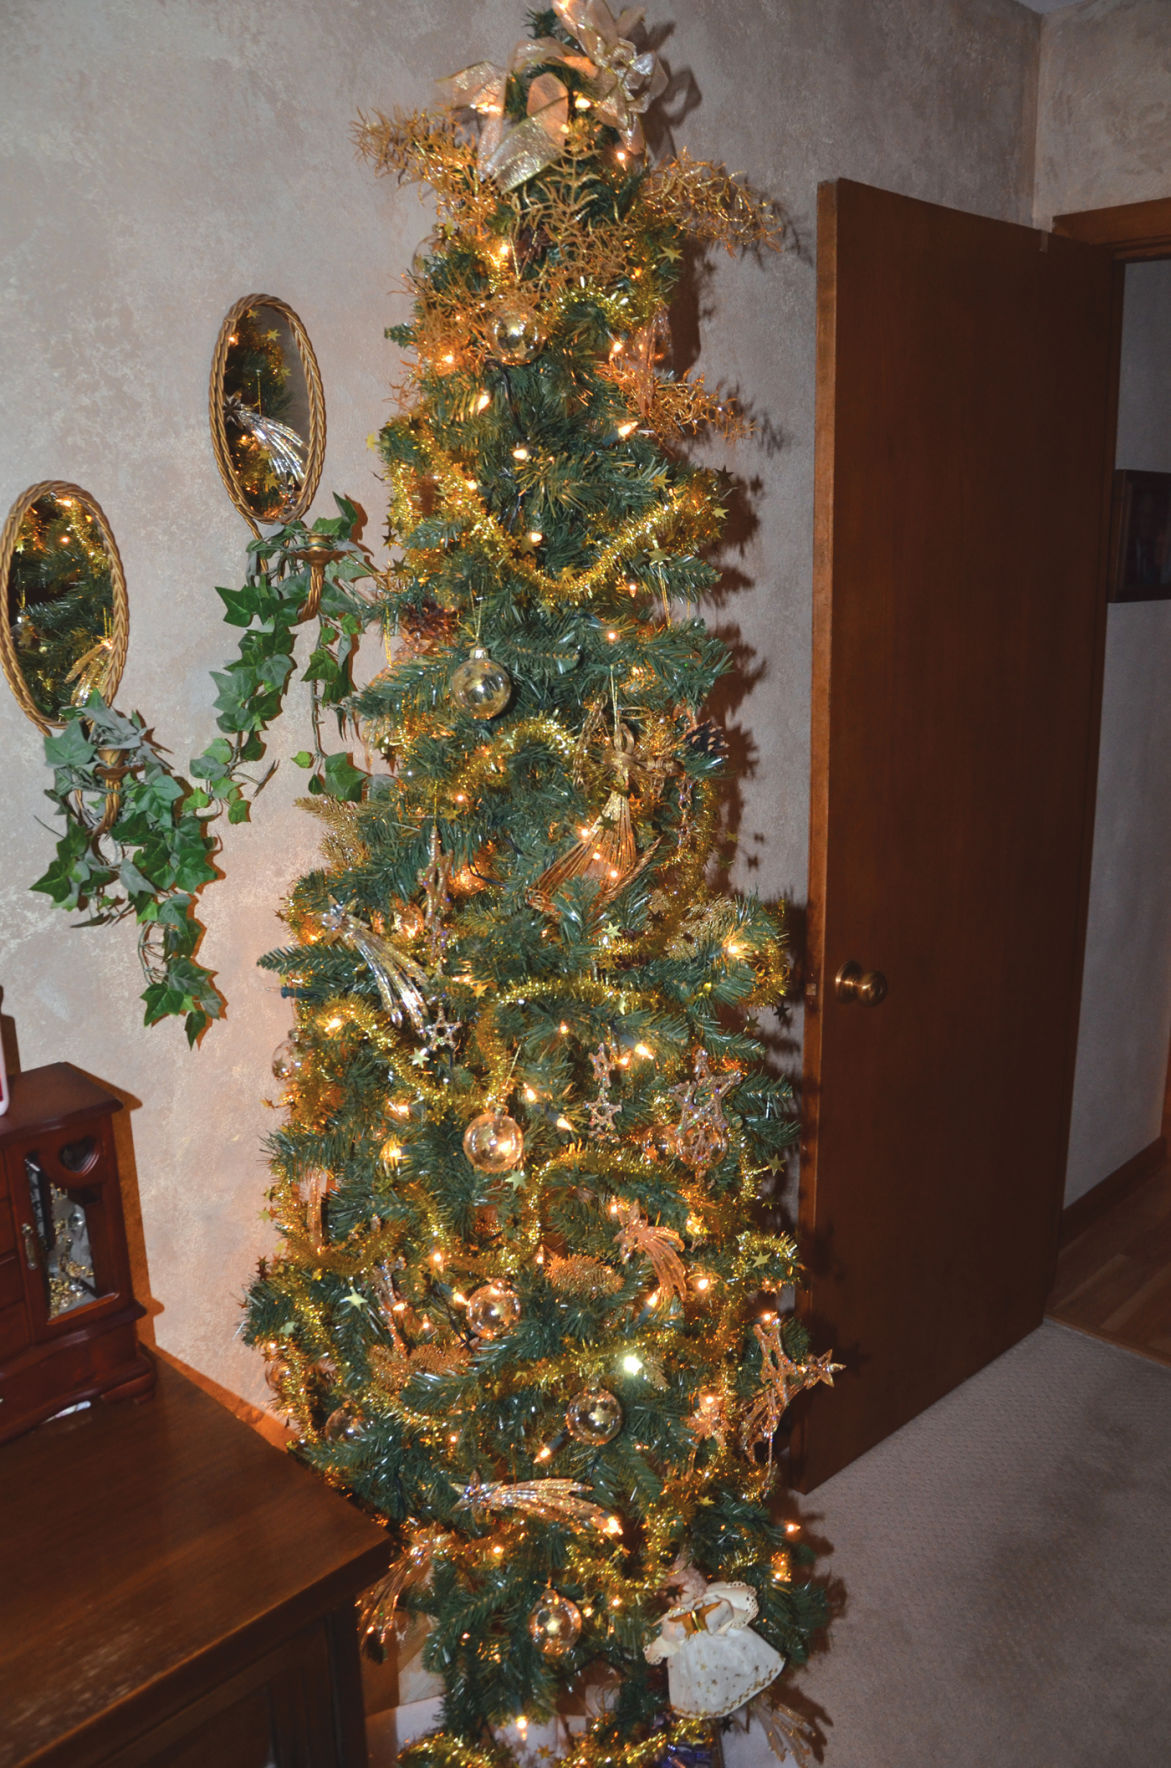 Local resident goes all out for Christmas with trees of multiple